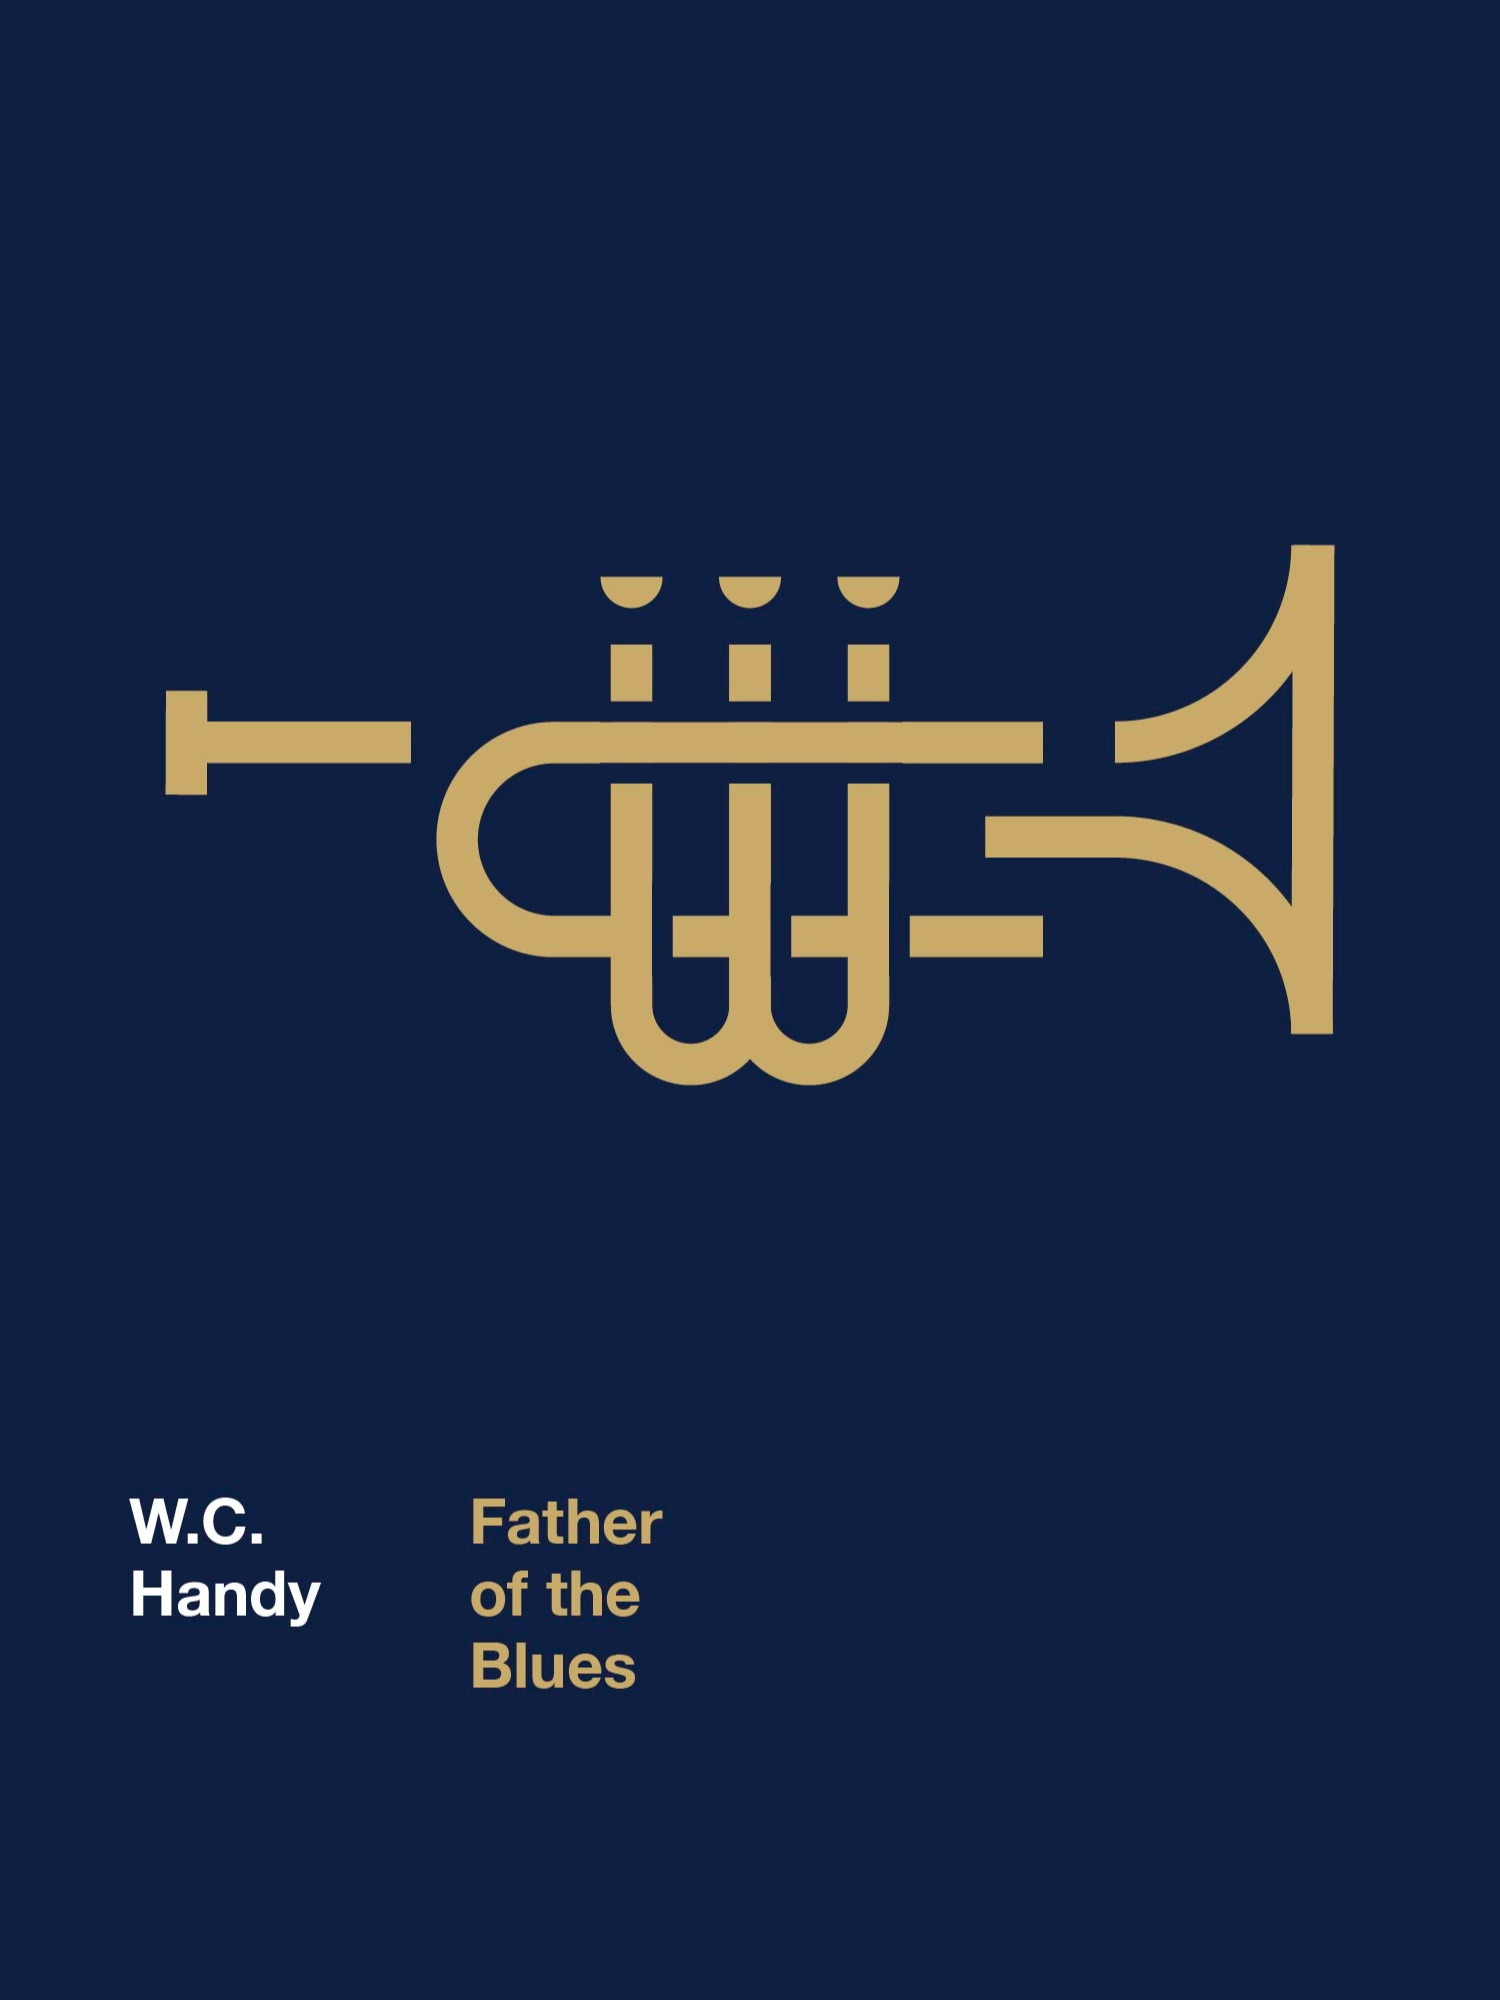 Lauderdale County  - Home of W.C. Handy